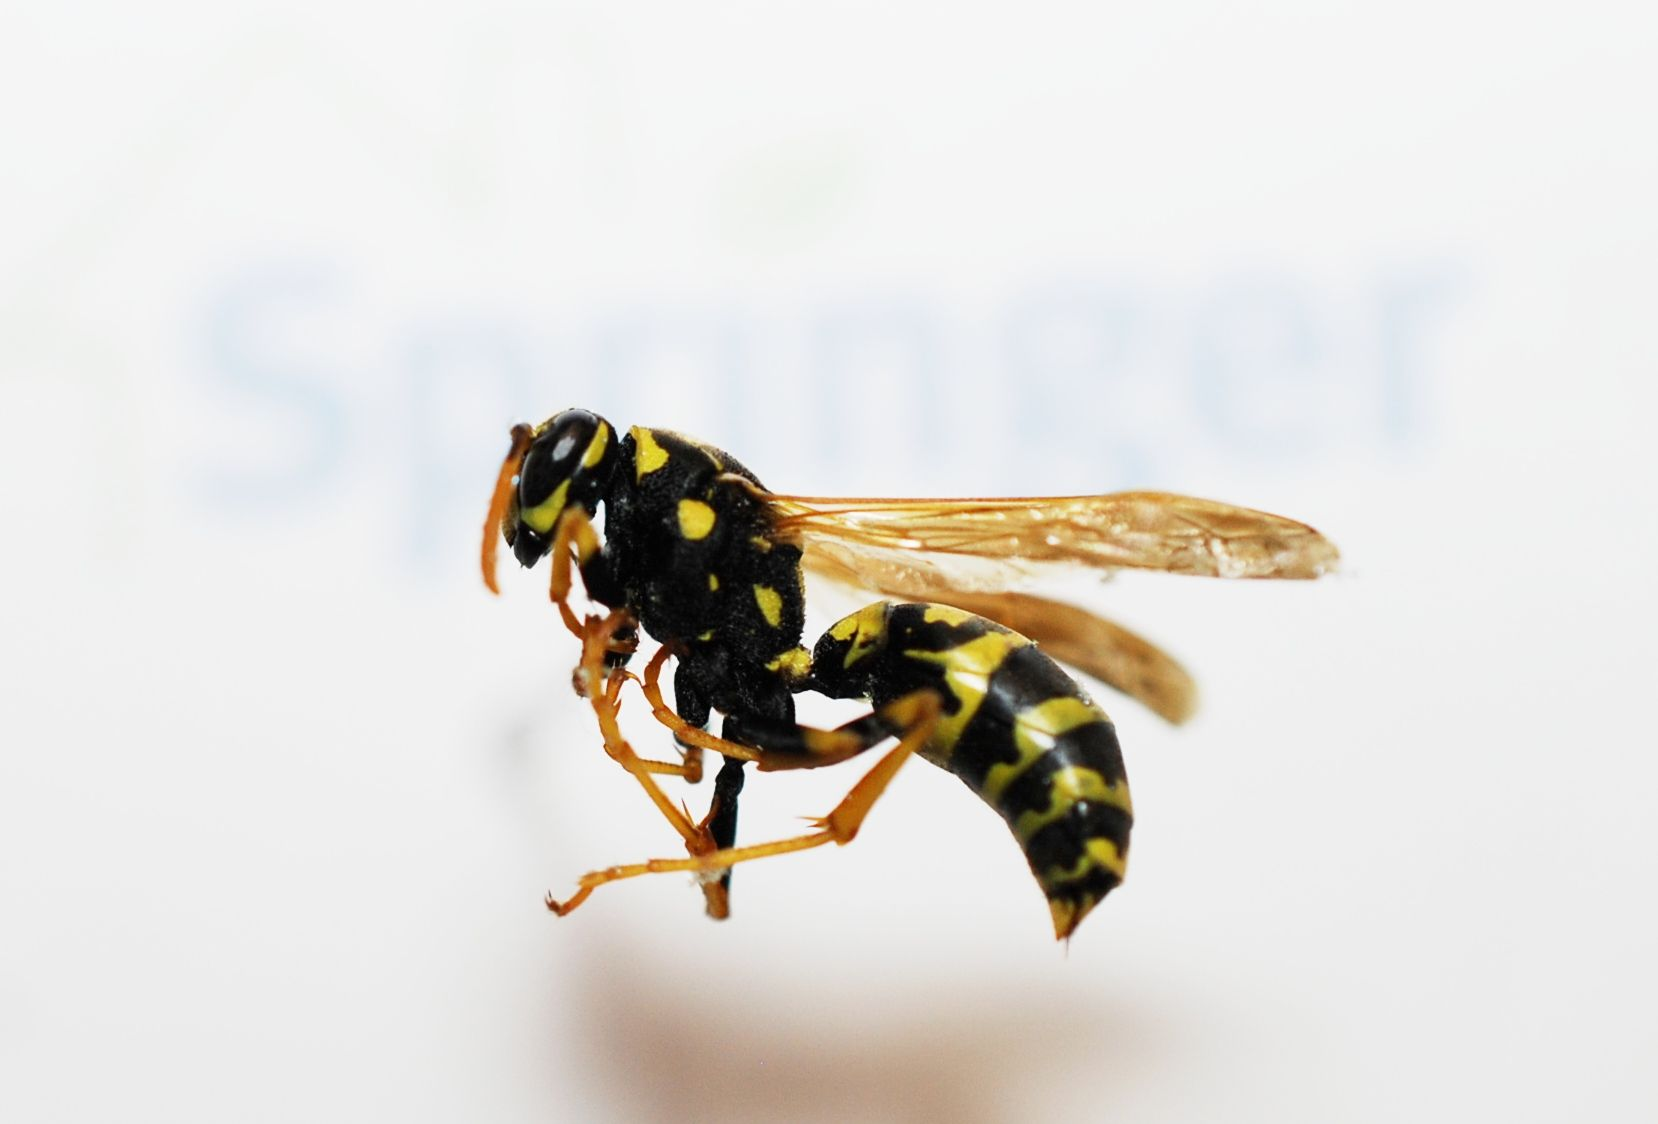 3 Common Wasps In Iowa Paper Wasps Long Bodies And Legs Large Exposed Nests On The Eaves Of House Or At The End Of Open Pipes Tree Trunks Cedar Rapids Iowa